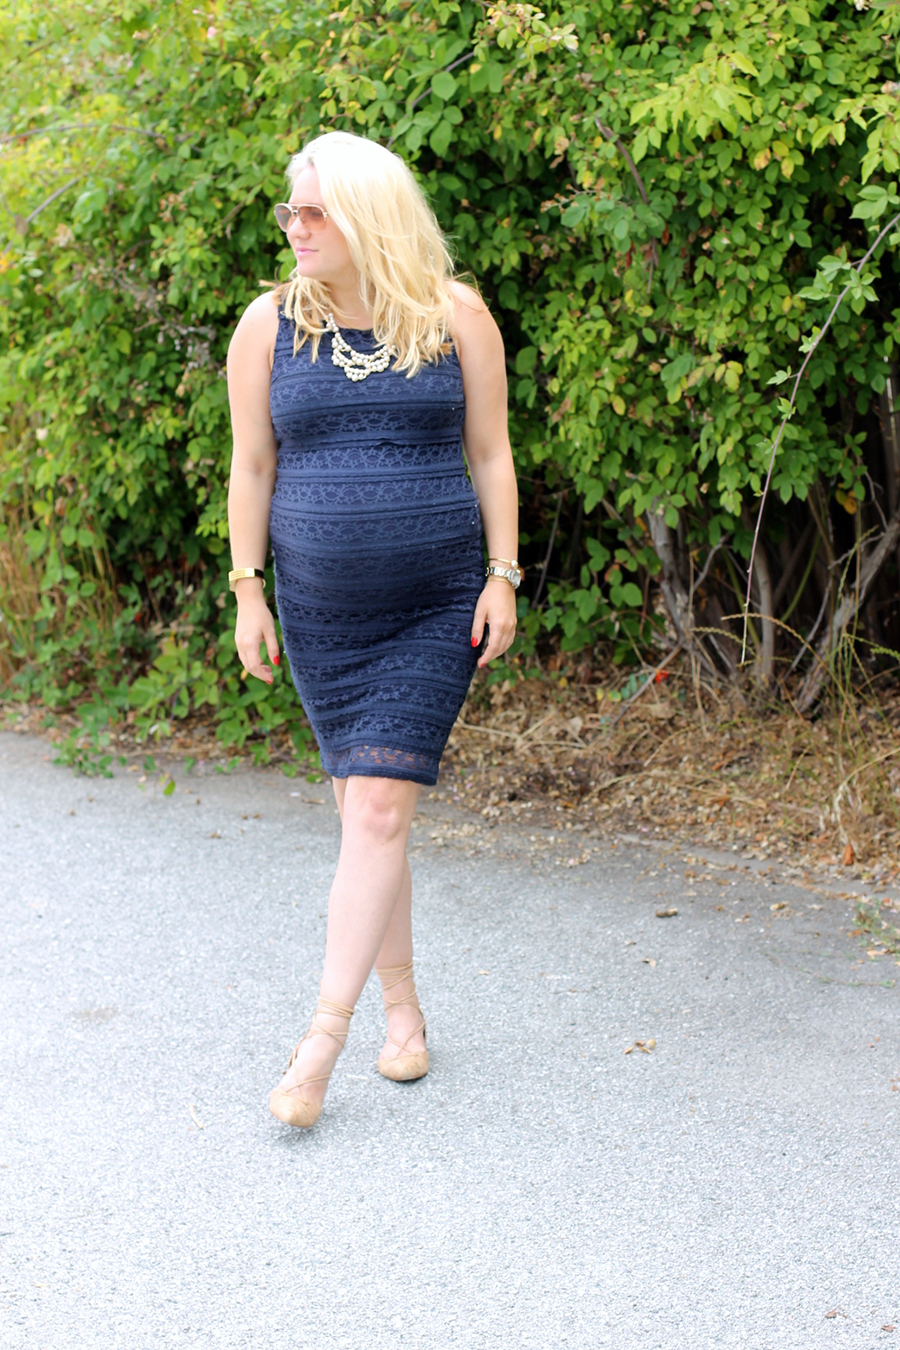 Ingrid and Isabel navy lace dress-Maternity Style-Outfit Inspiration-Bay Area Fashion Blogger-Have Need Want-Pregnancy Style 8